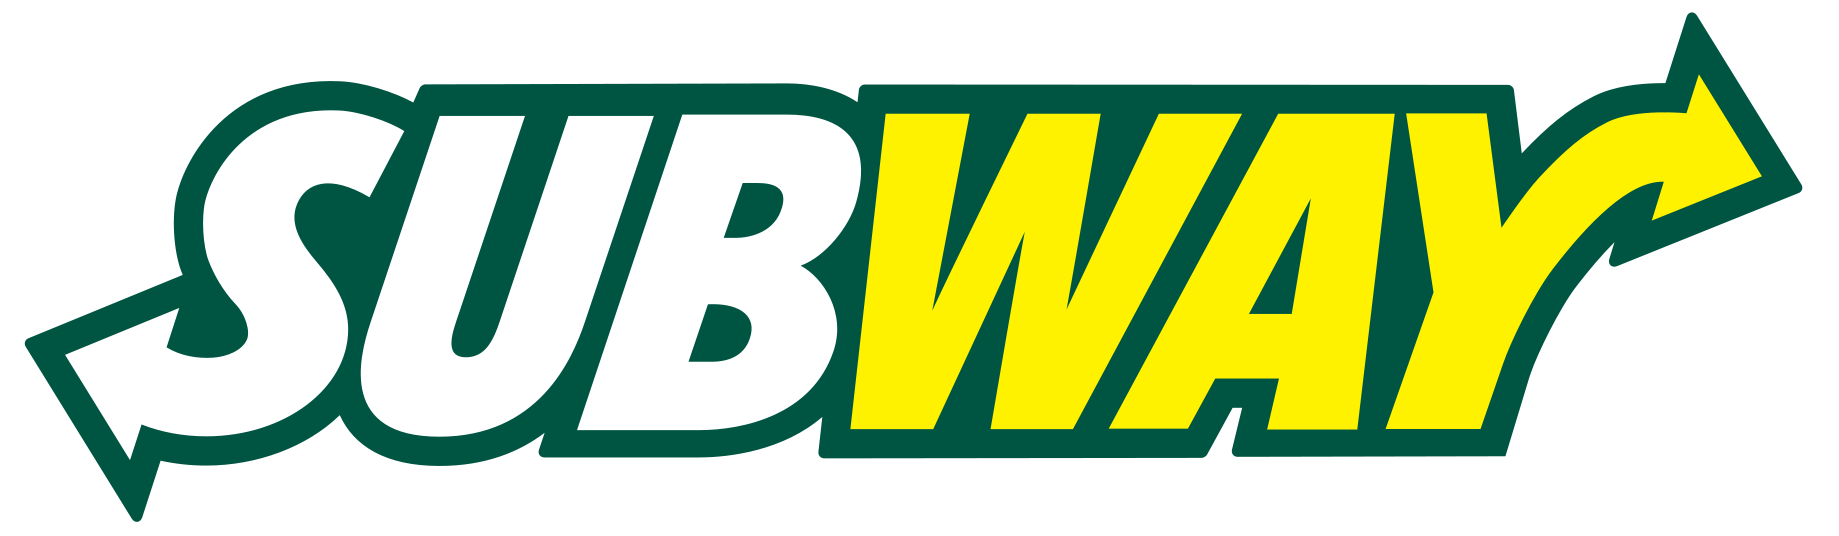 subway logo - Subway Logo